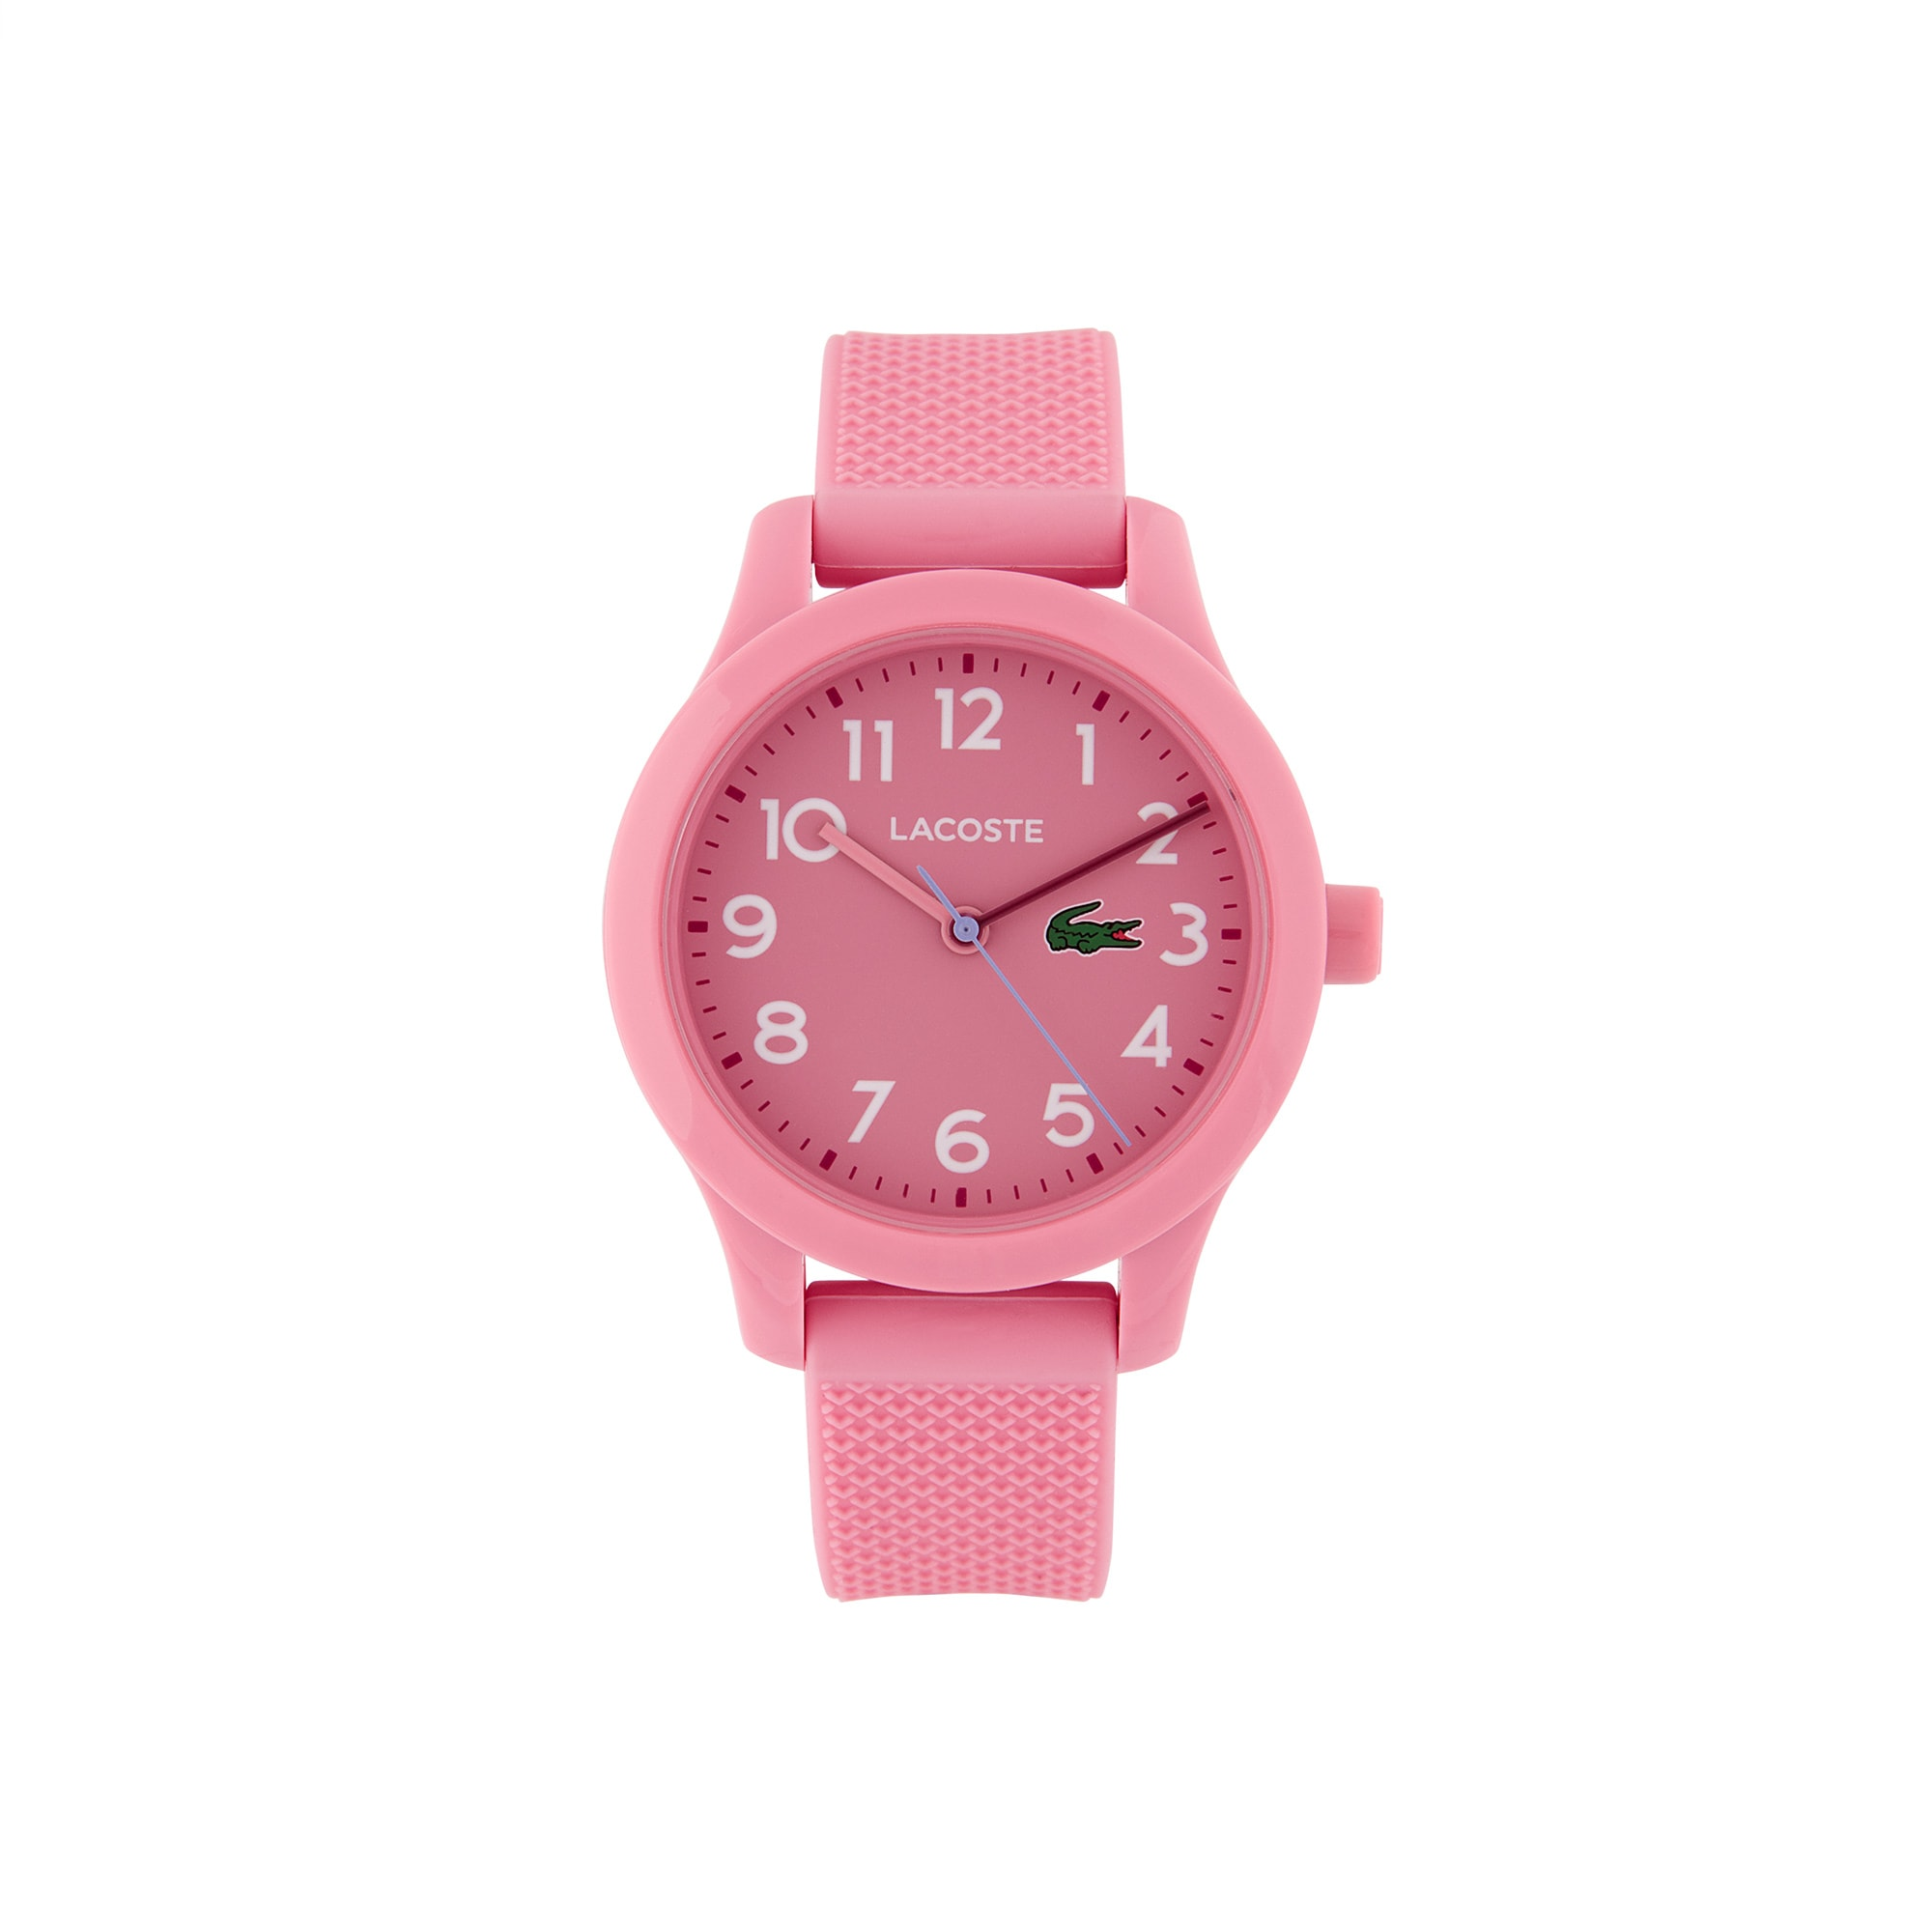 Child's Lacoste 12.12 Watch with Pink Silicone Strap